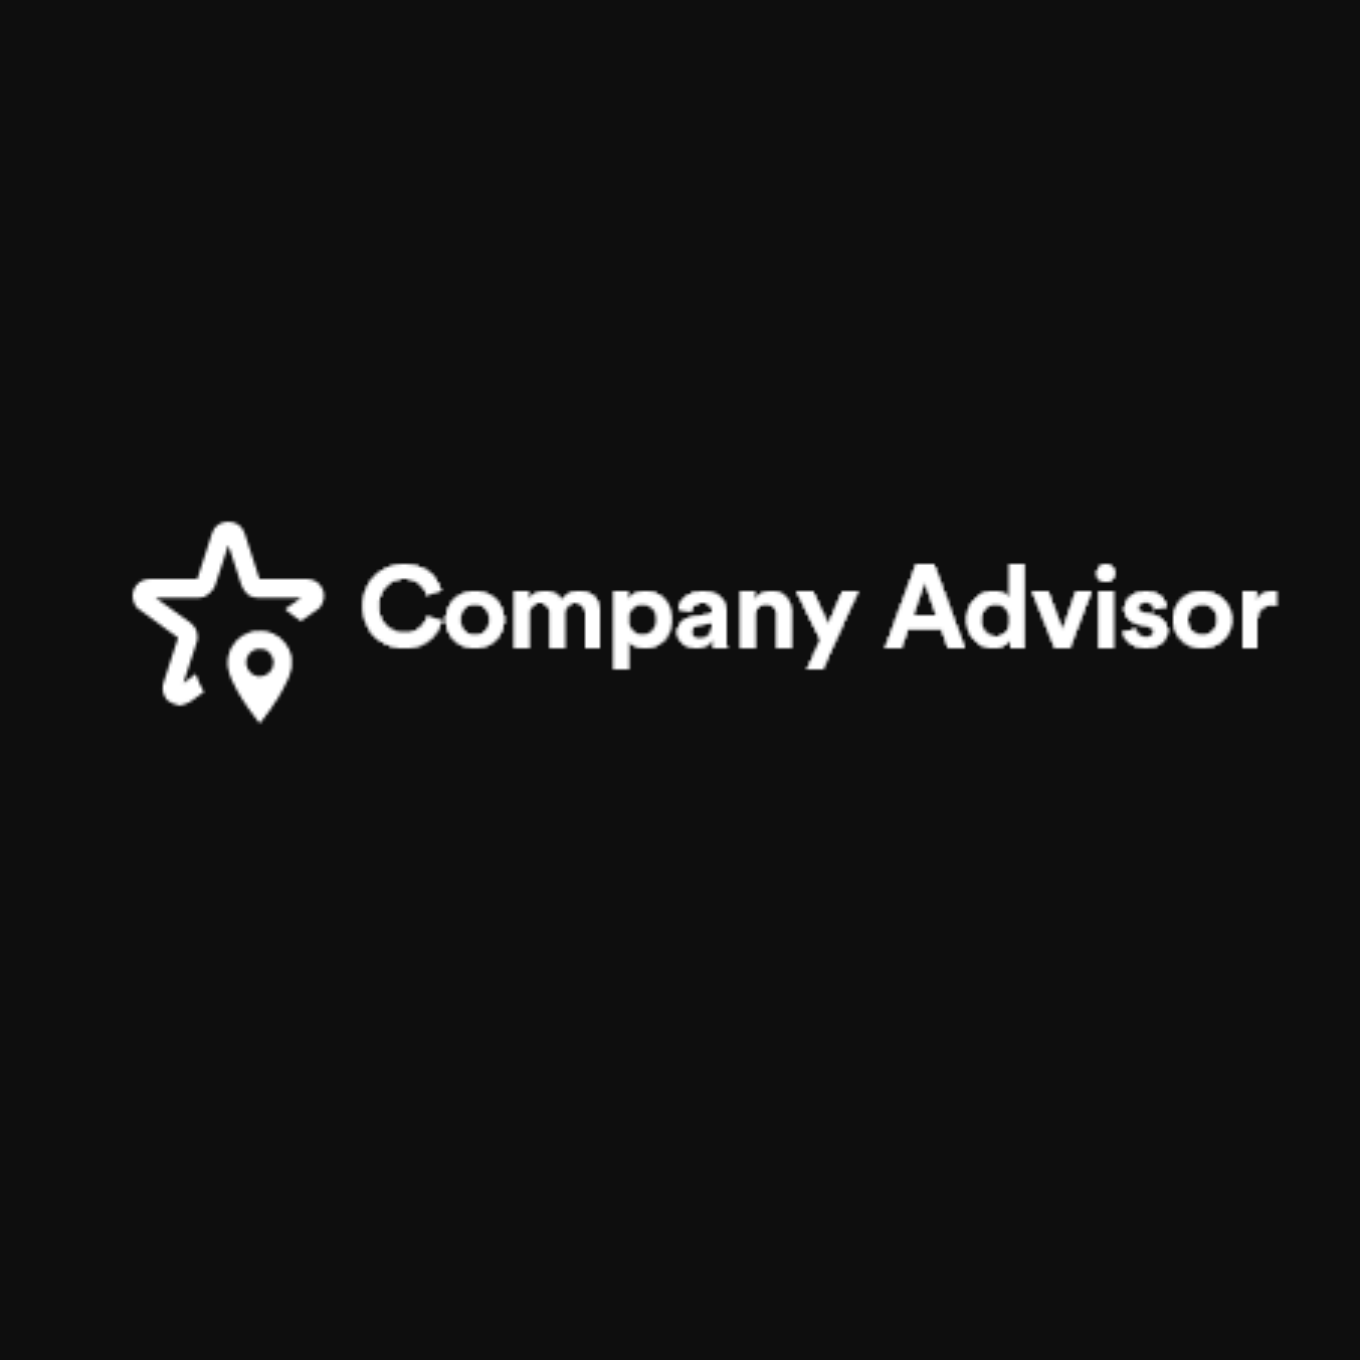 Company Advisor: A Search Engine That Helps Individuals and Companies to Find Top Services such as Cleaning Services in the UAE